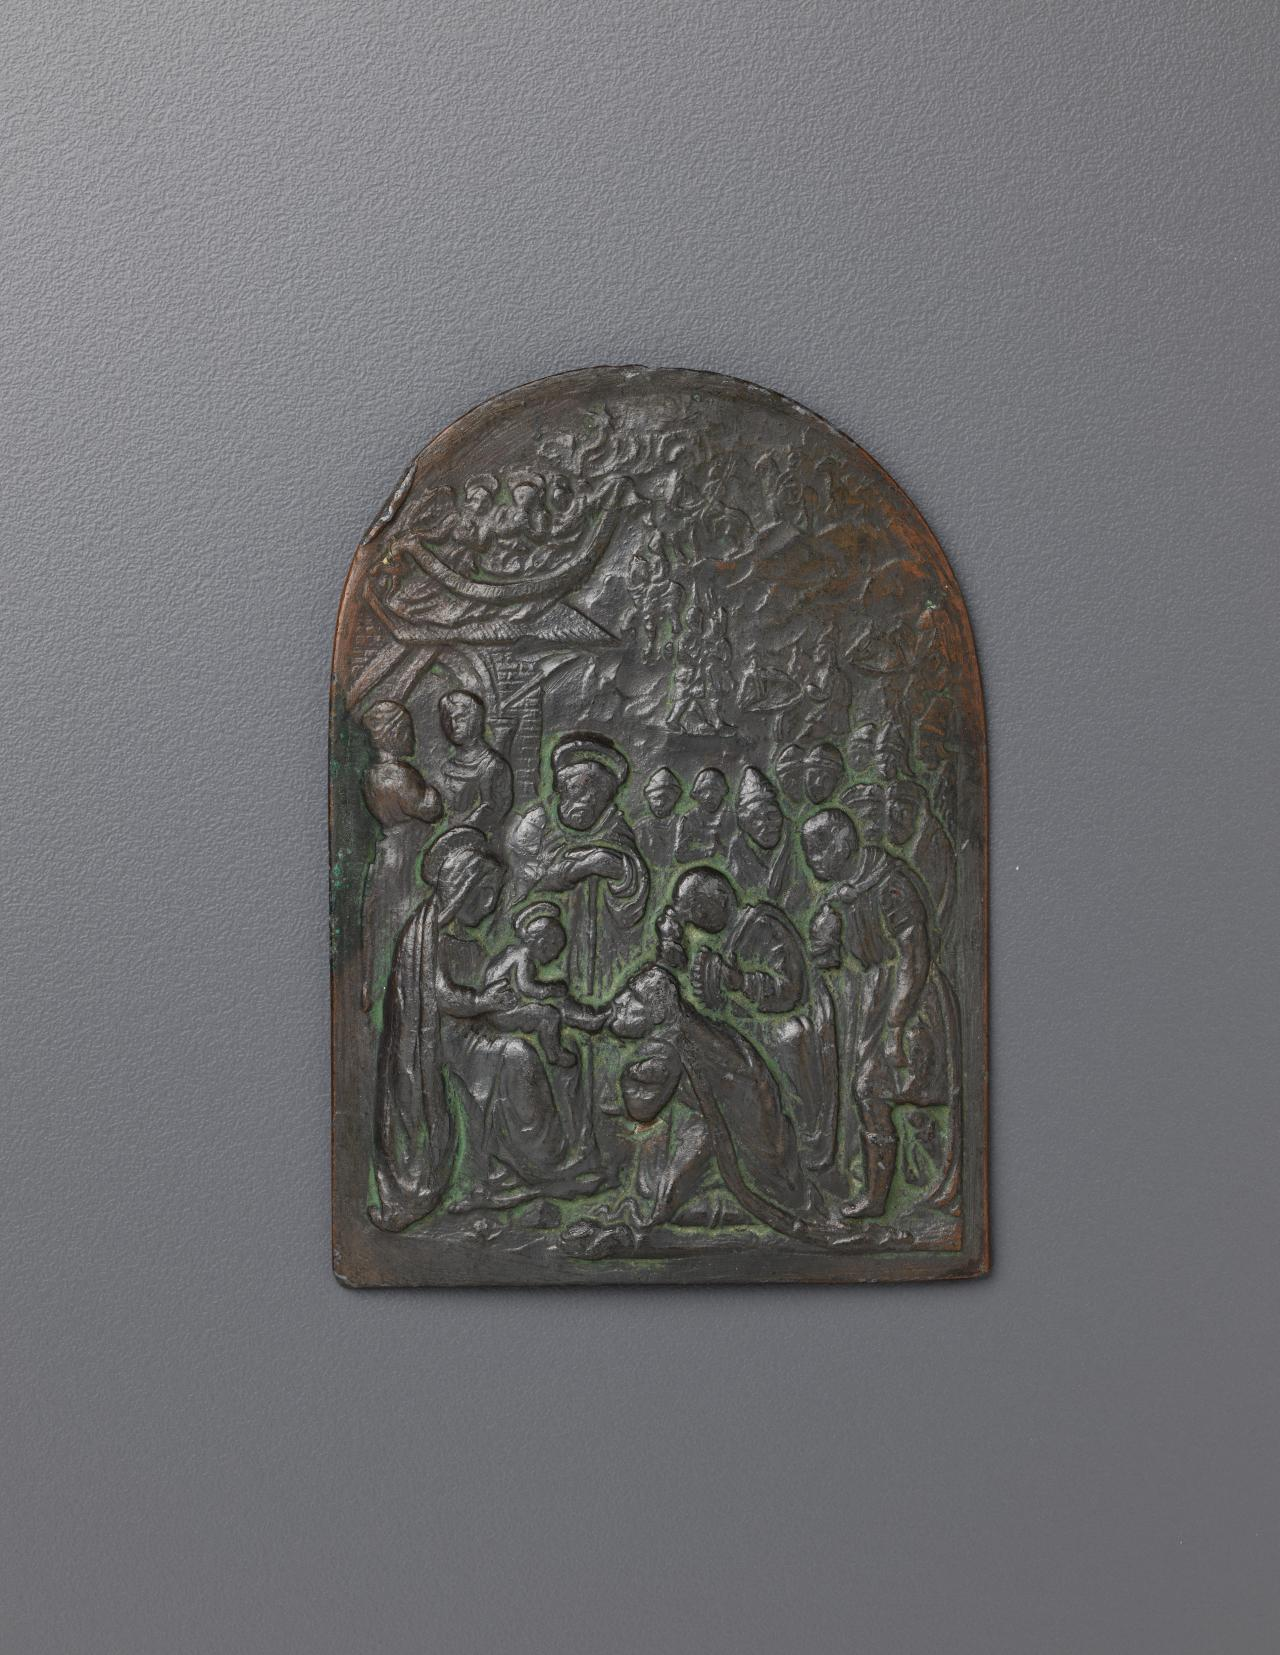 Adoration of the Kings, plaquette